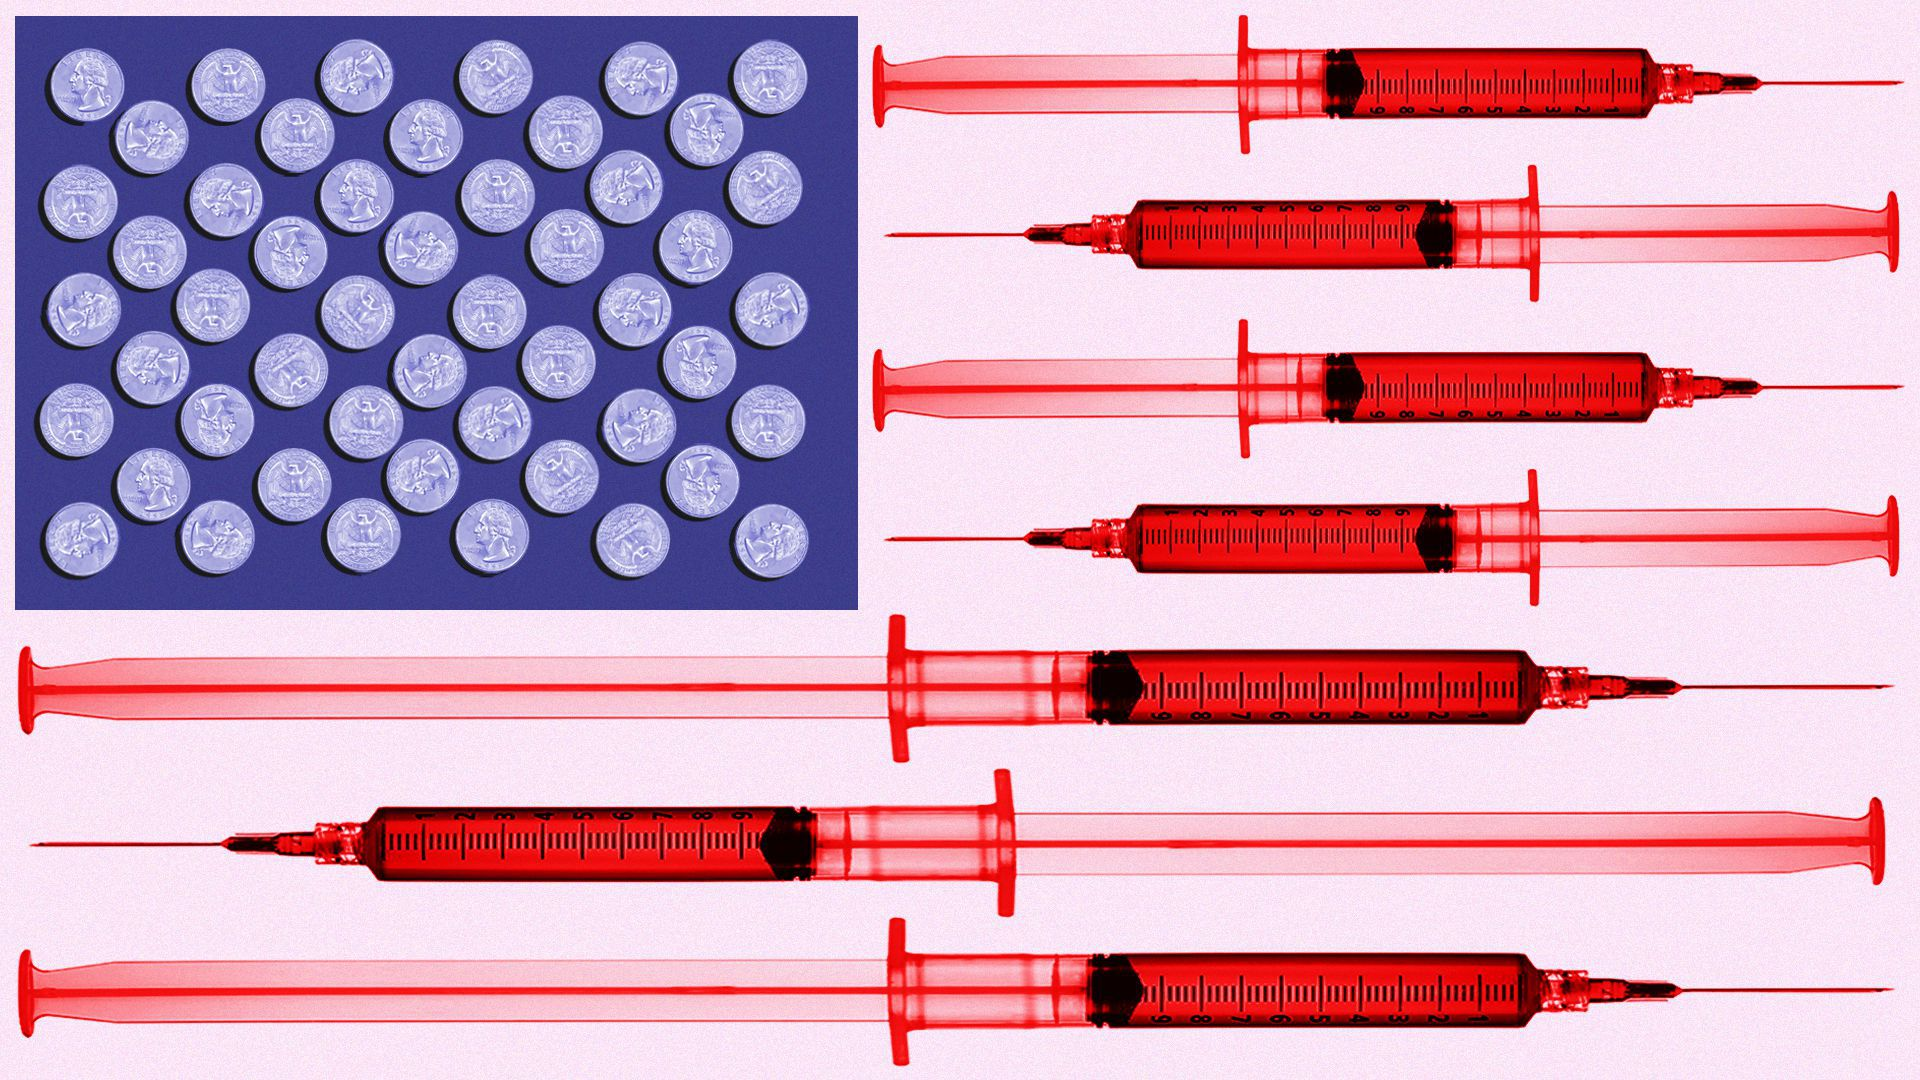 Illustration of an American flag made up of syringes and quarters